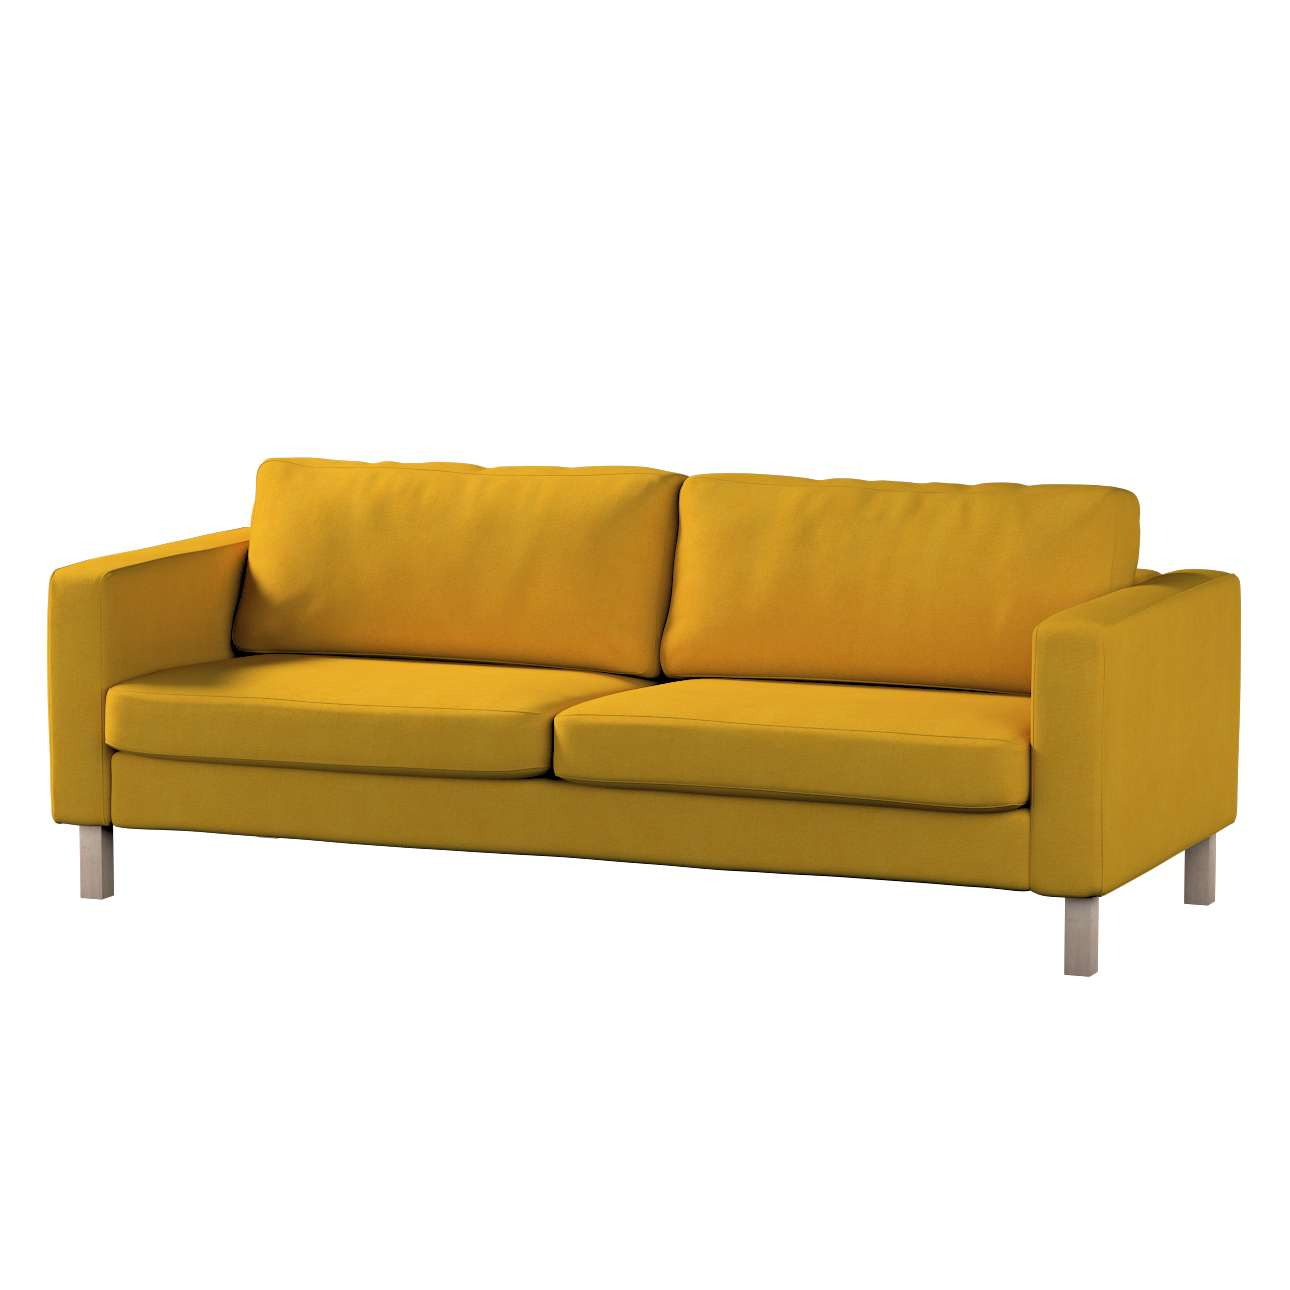 Astonishing Karlstad Sofa Bed Cover Gmtry Best Dining Table And Chair Ideas Images Gmtryco